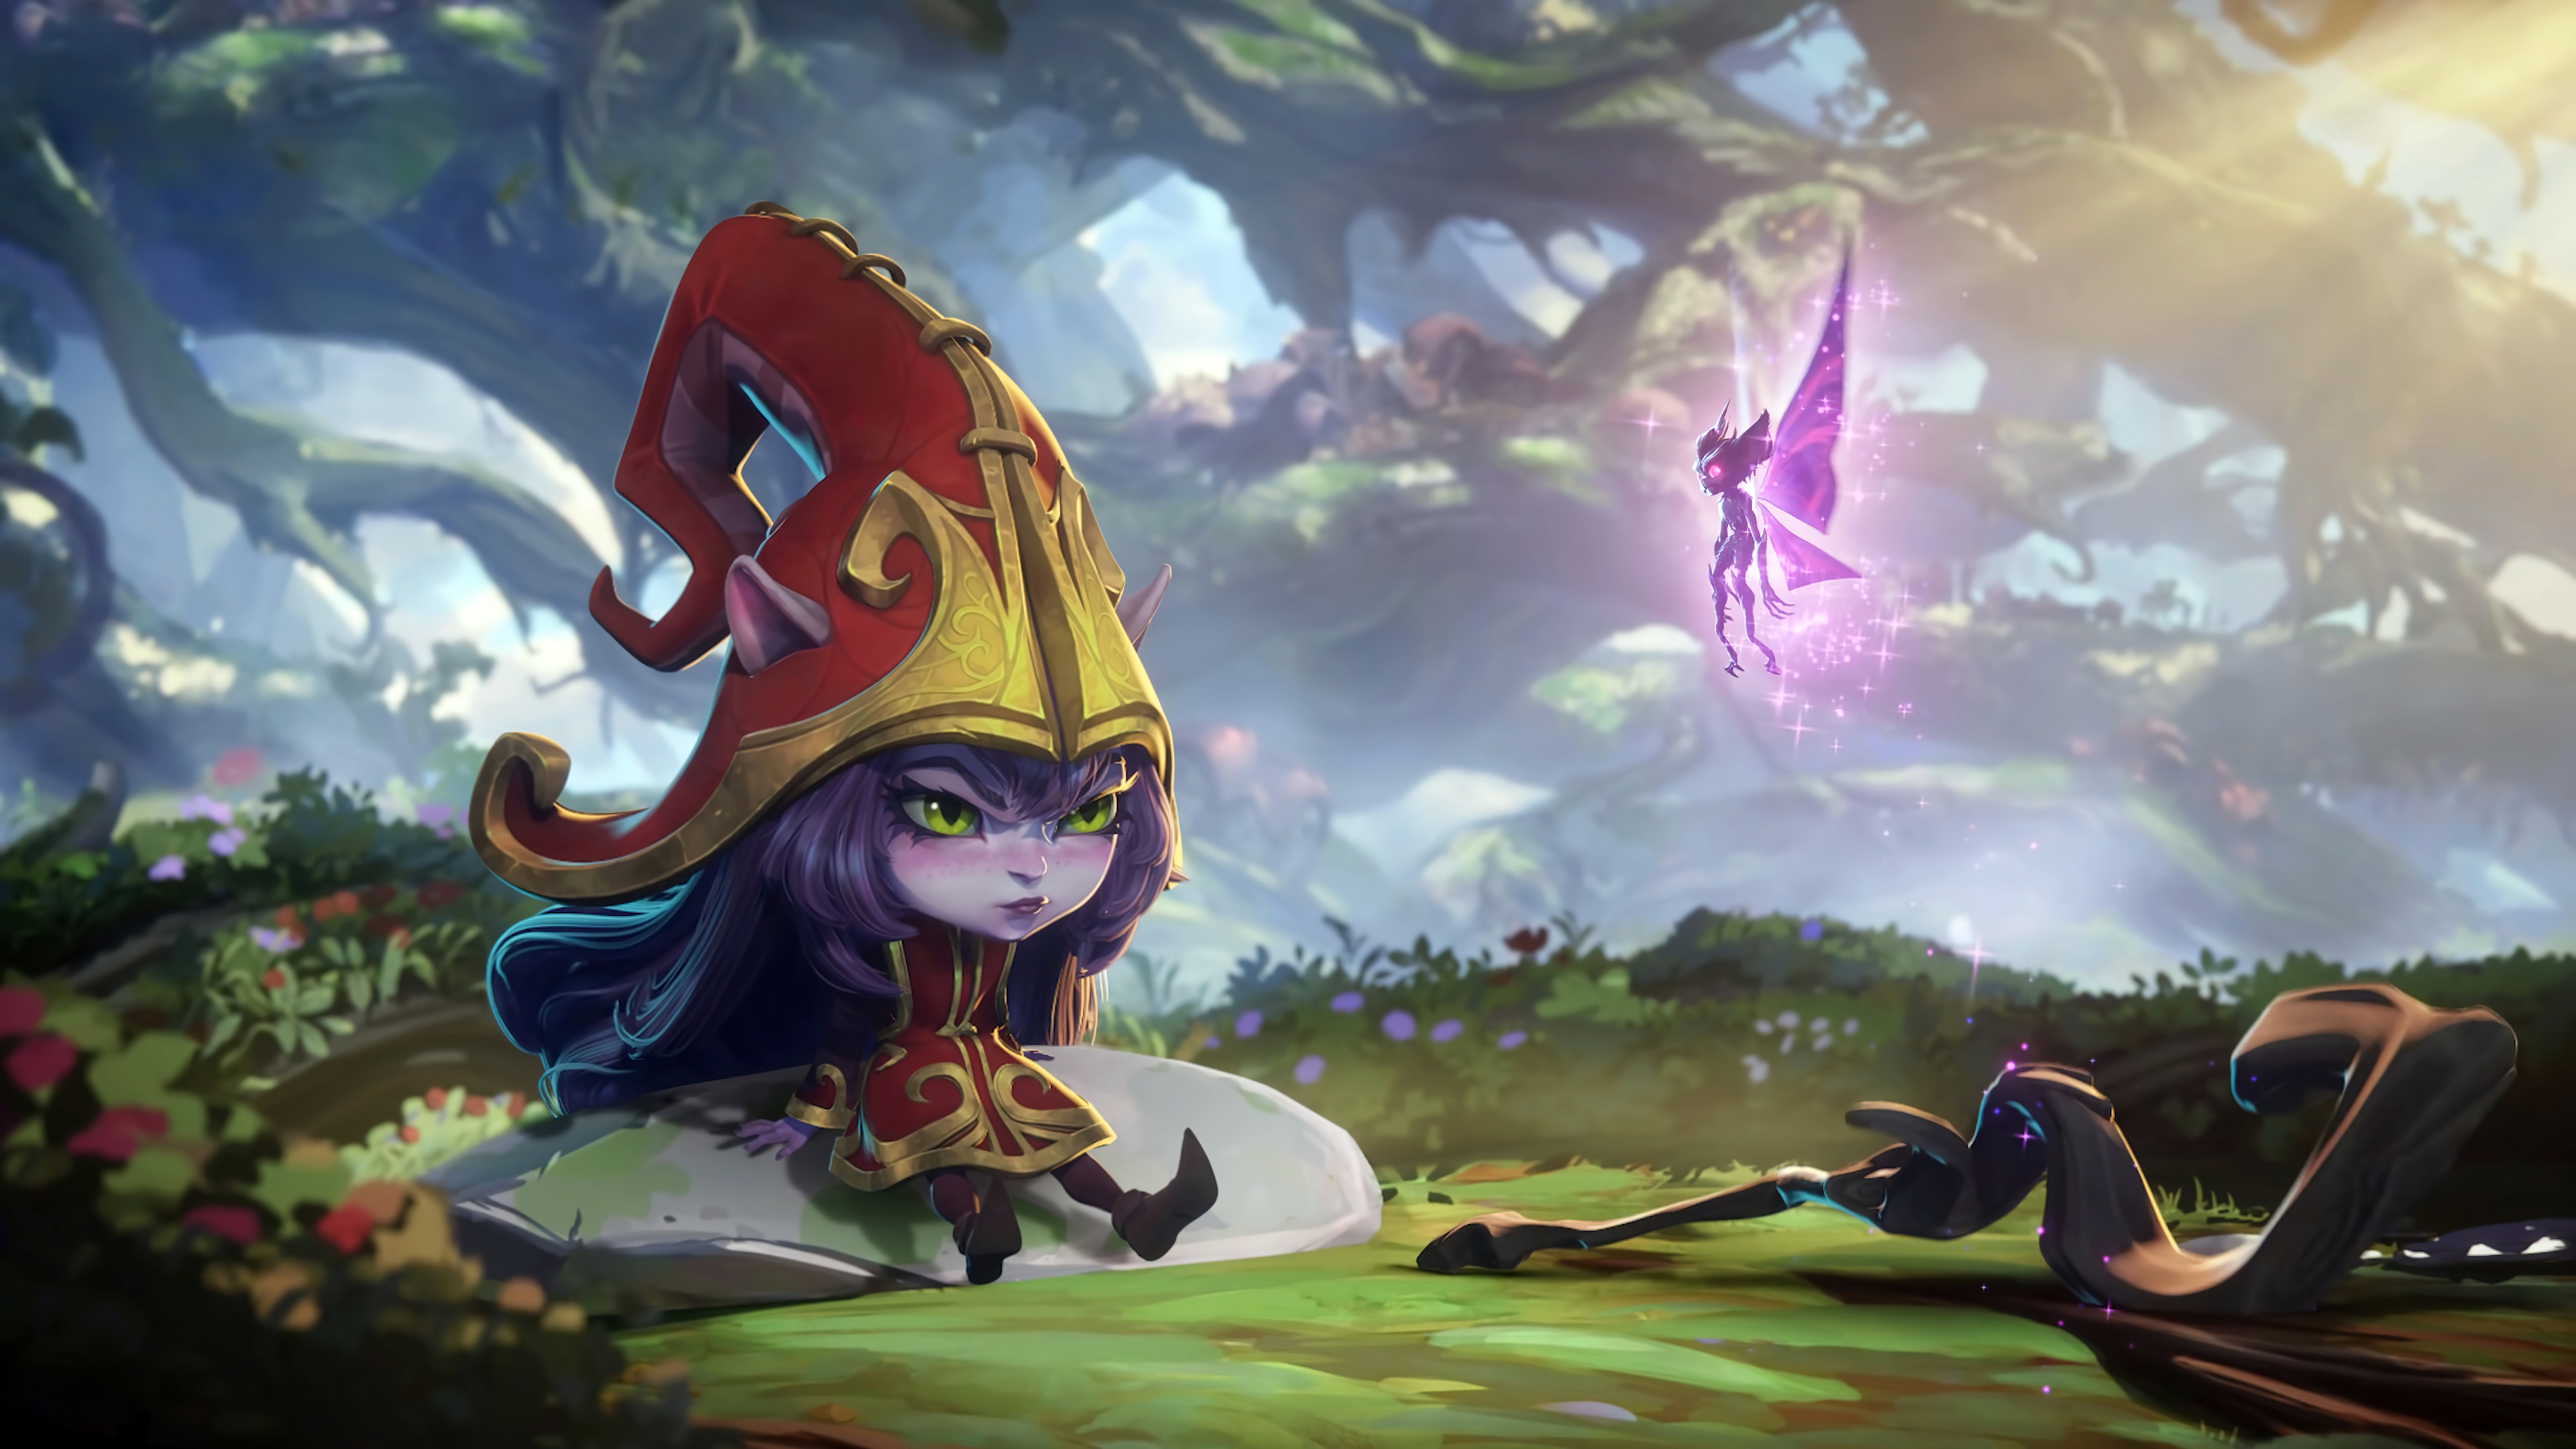 Fondos de pantalla Lulu de League of Legends